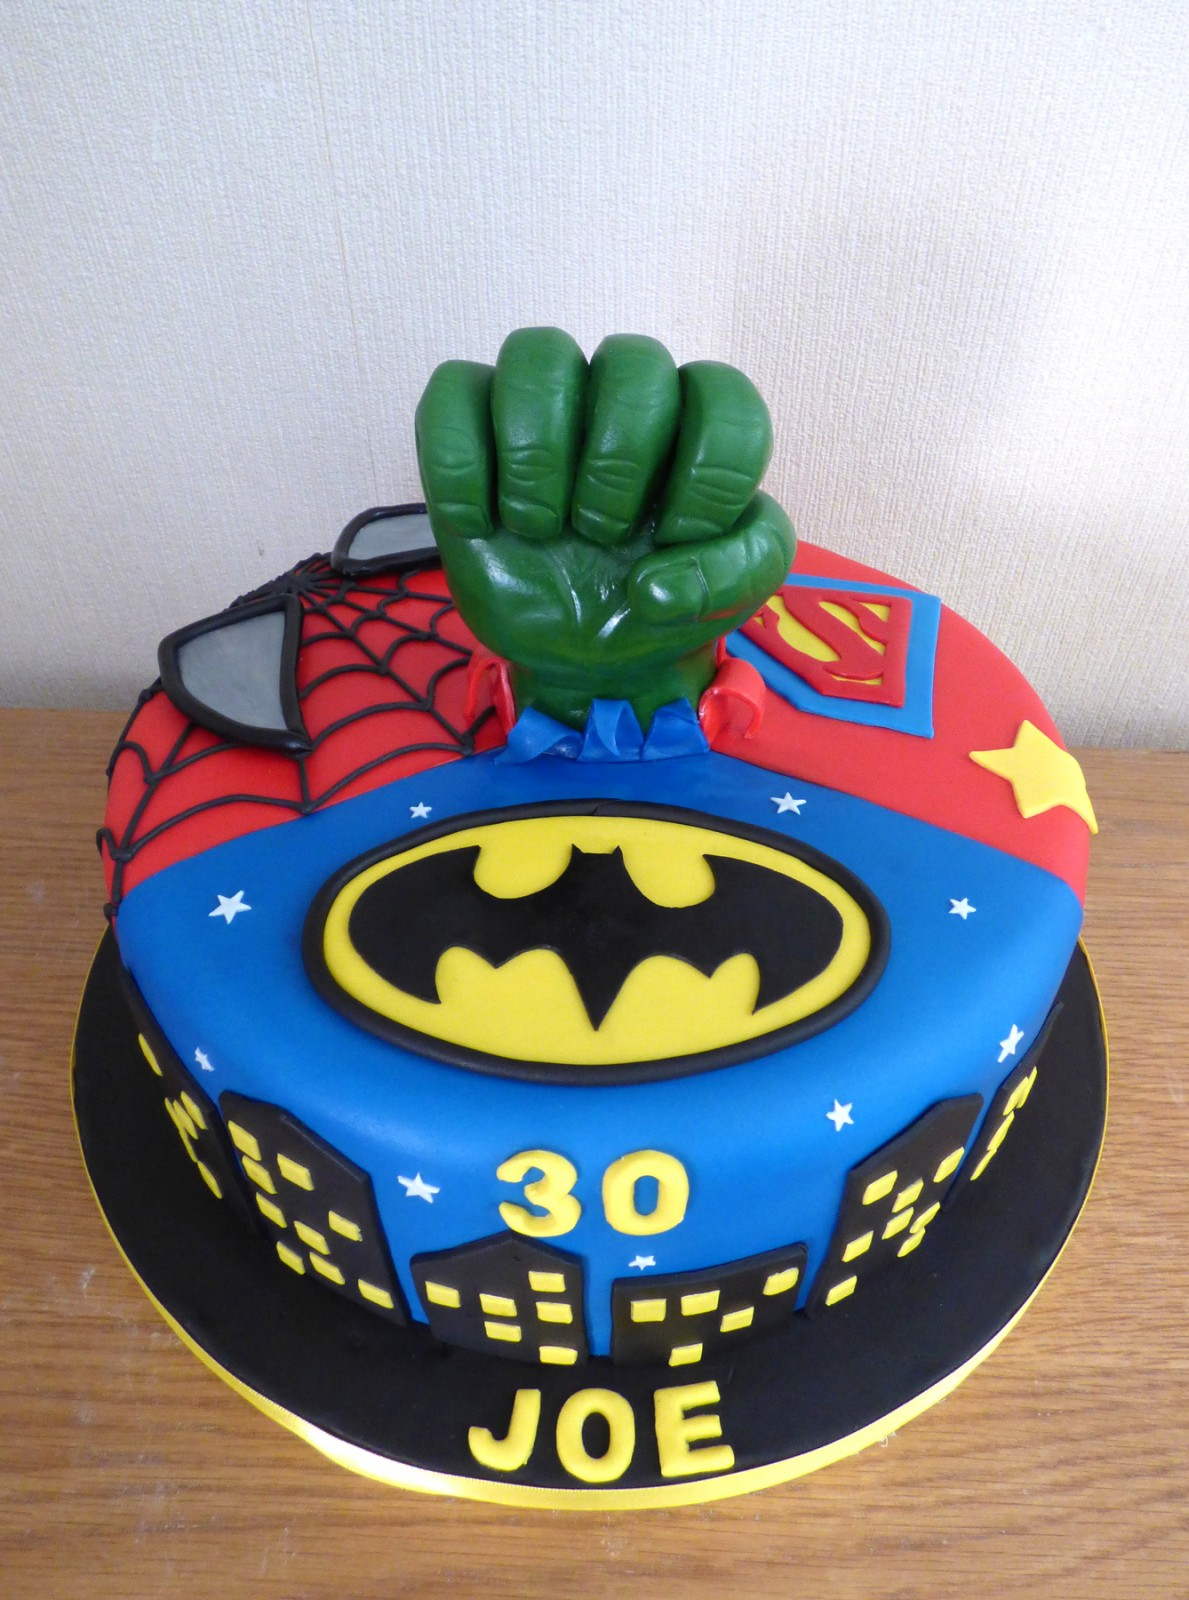 Admirable Batman Superman Spiderman The Hulk Birthday Cake Susies Cakes Funny Birthday Cards Online Bapapcheapnameinfo